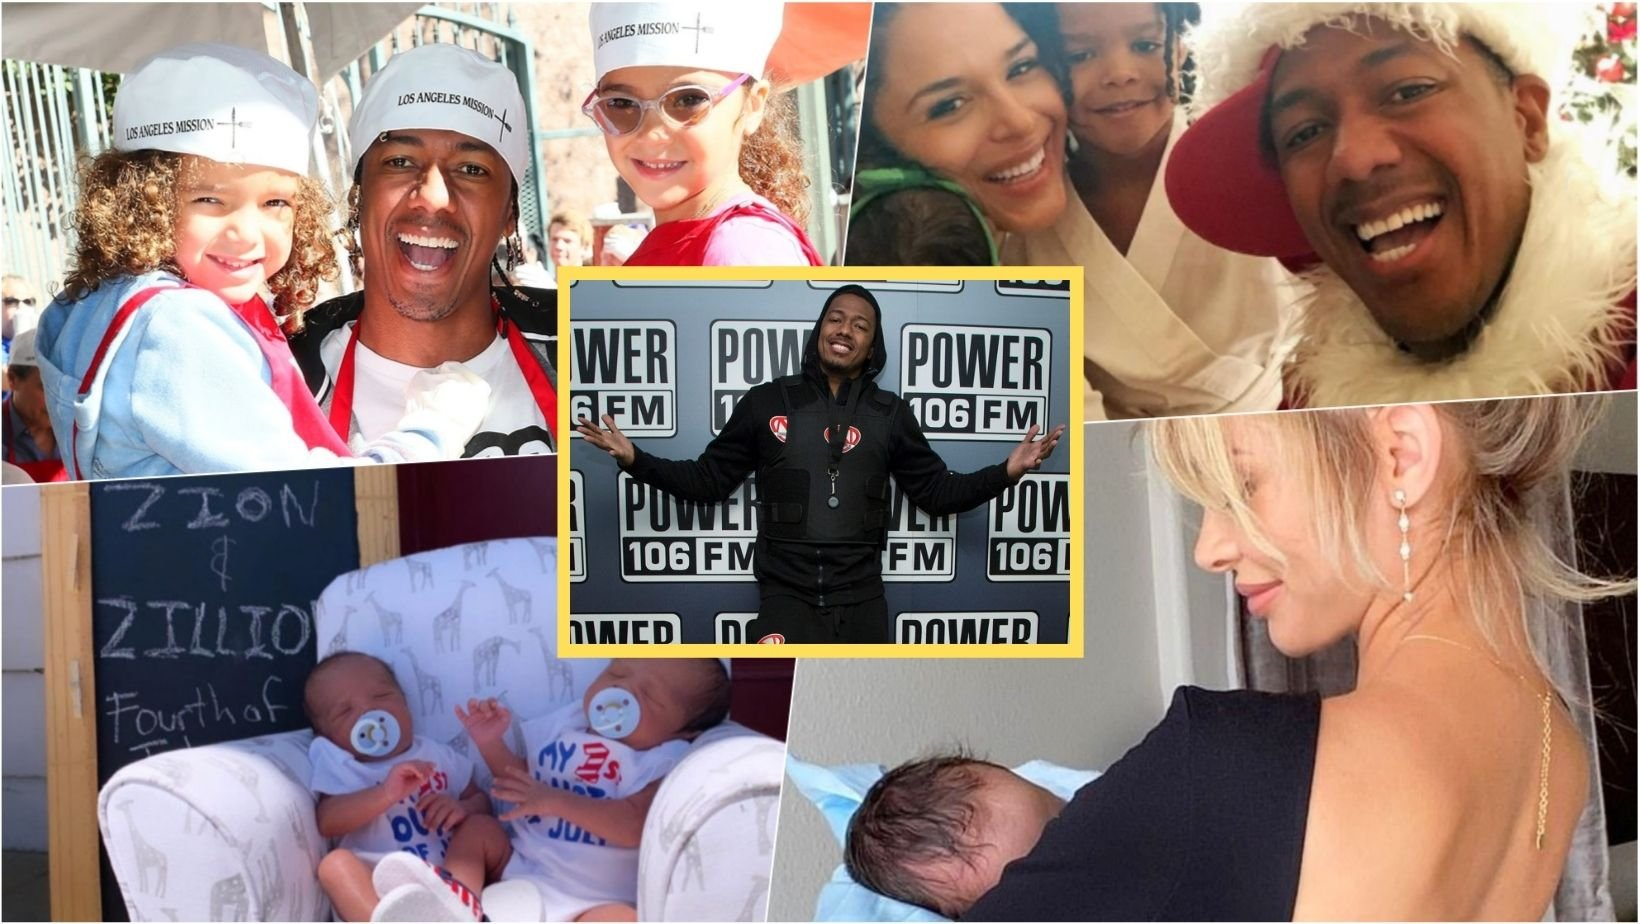 1 37.jpg?resize=1200,630 - Nick Cannon Defends Himself Amid Backlash, Saying That Having 4 Kids With Different Mothers In A Year Was 'On Purpose'